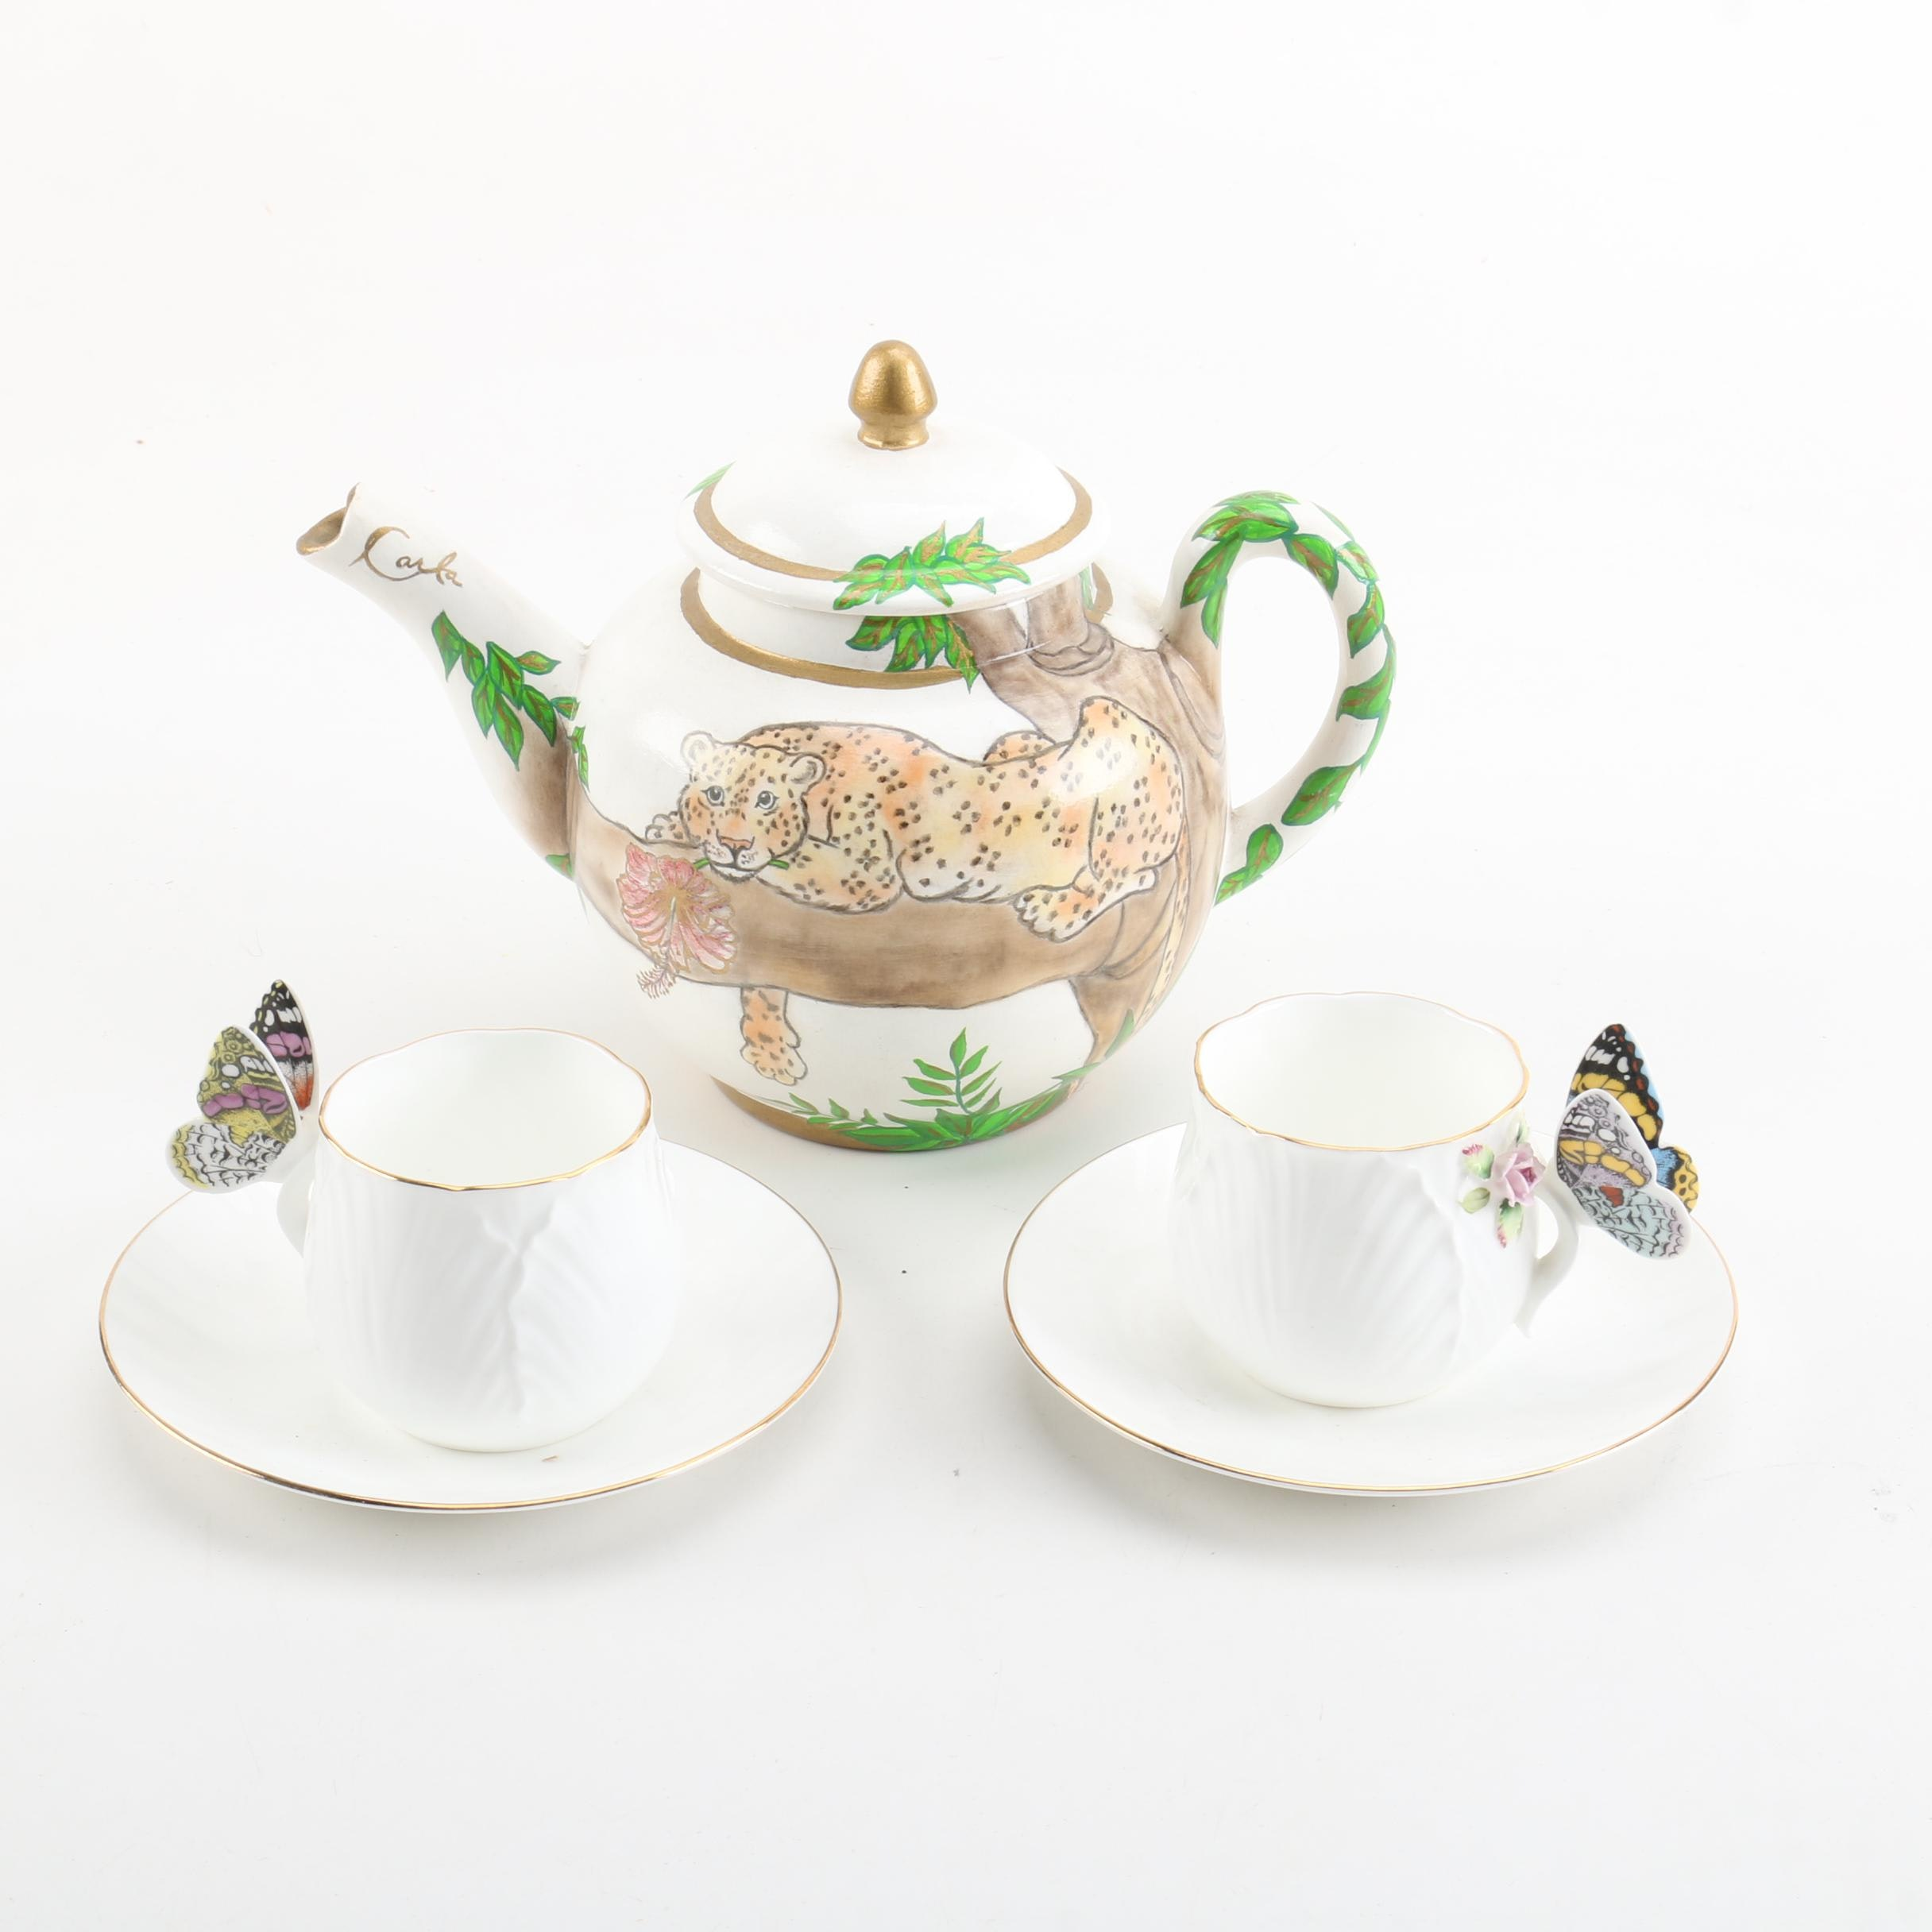 """Enesco """"Maruri Masterpiece"""" Teacups and Saucers with Hand Painted Teapot"""